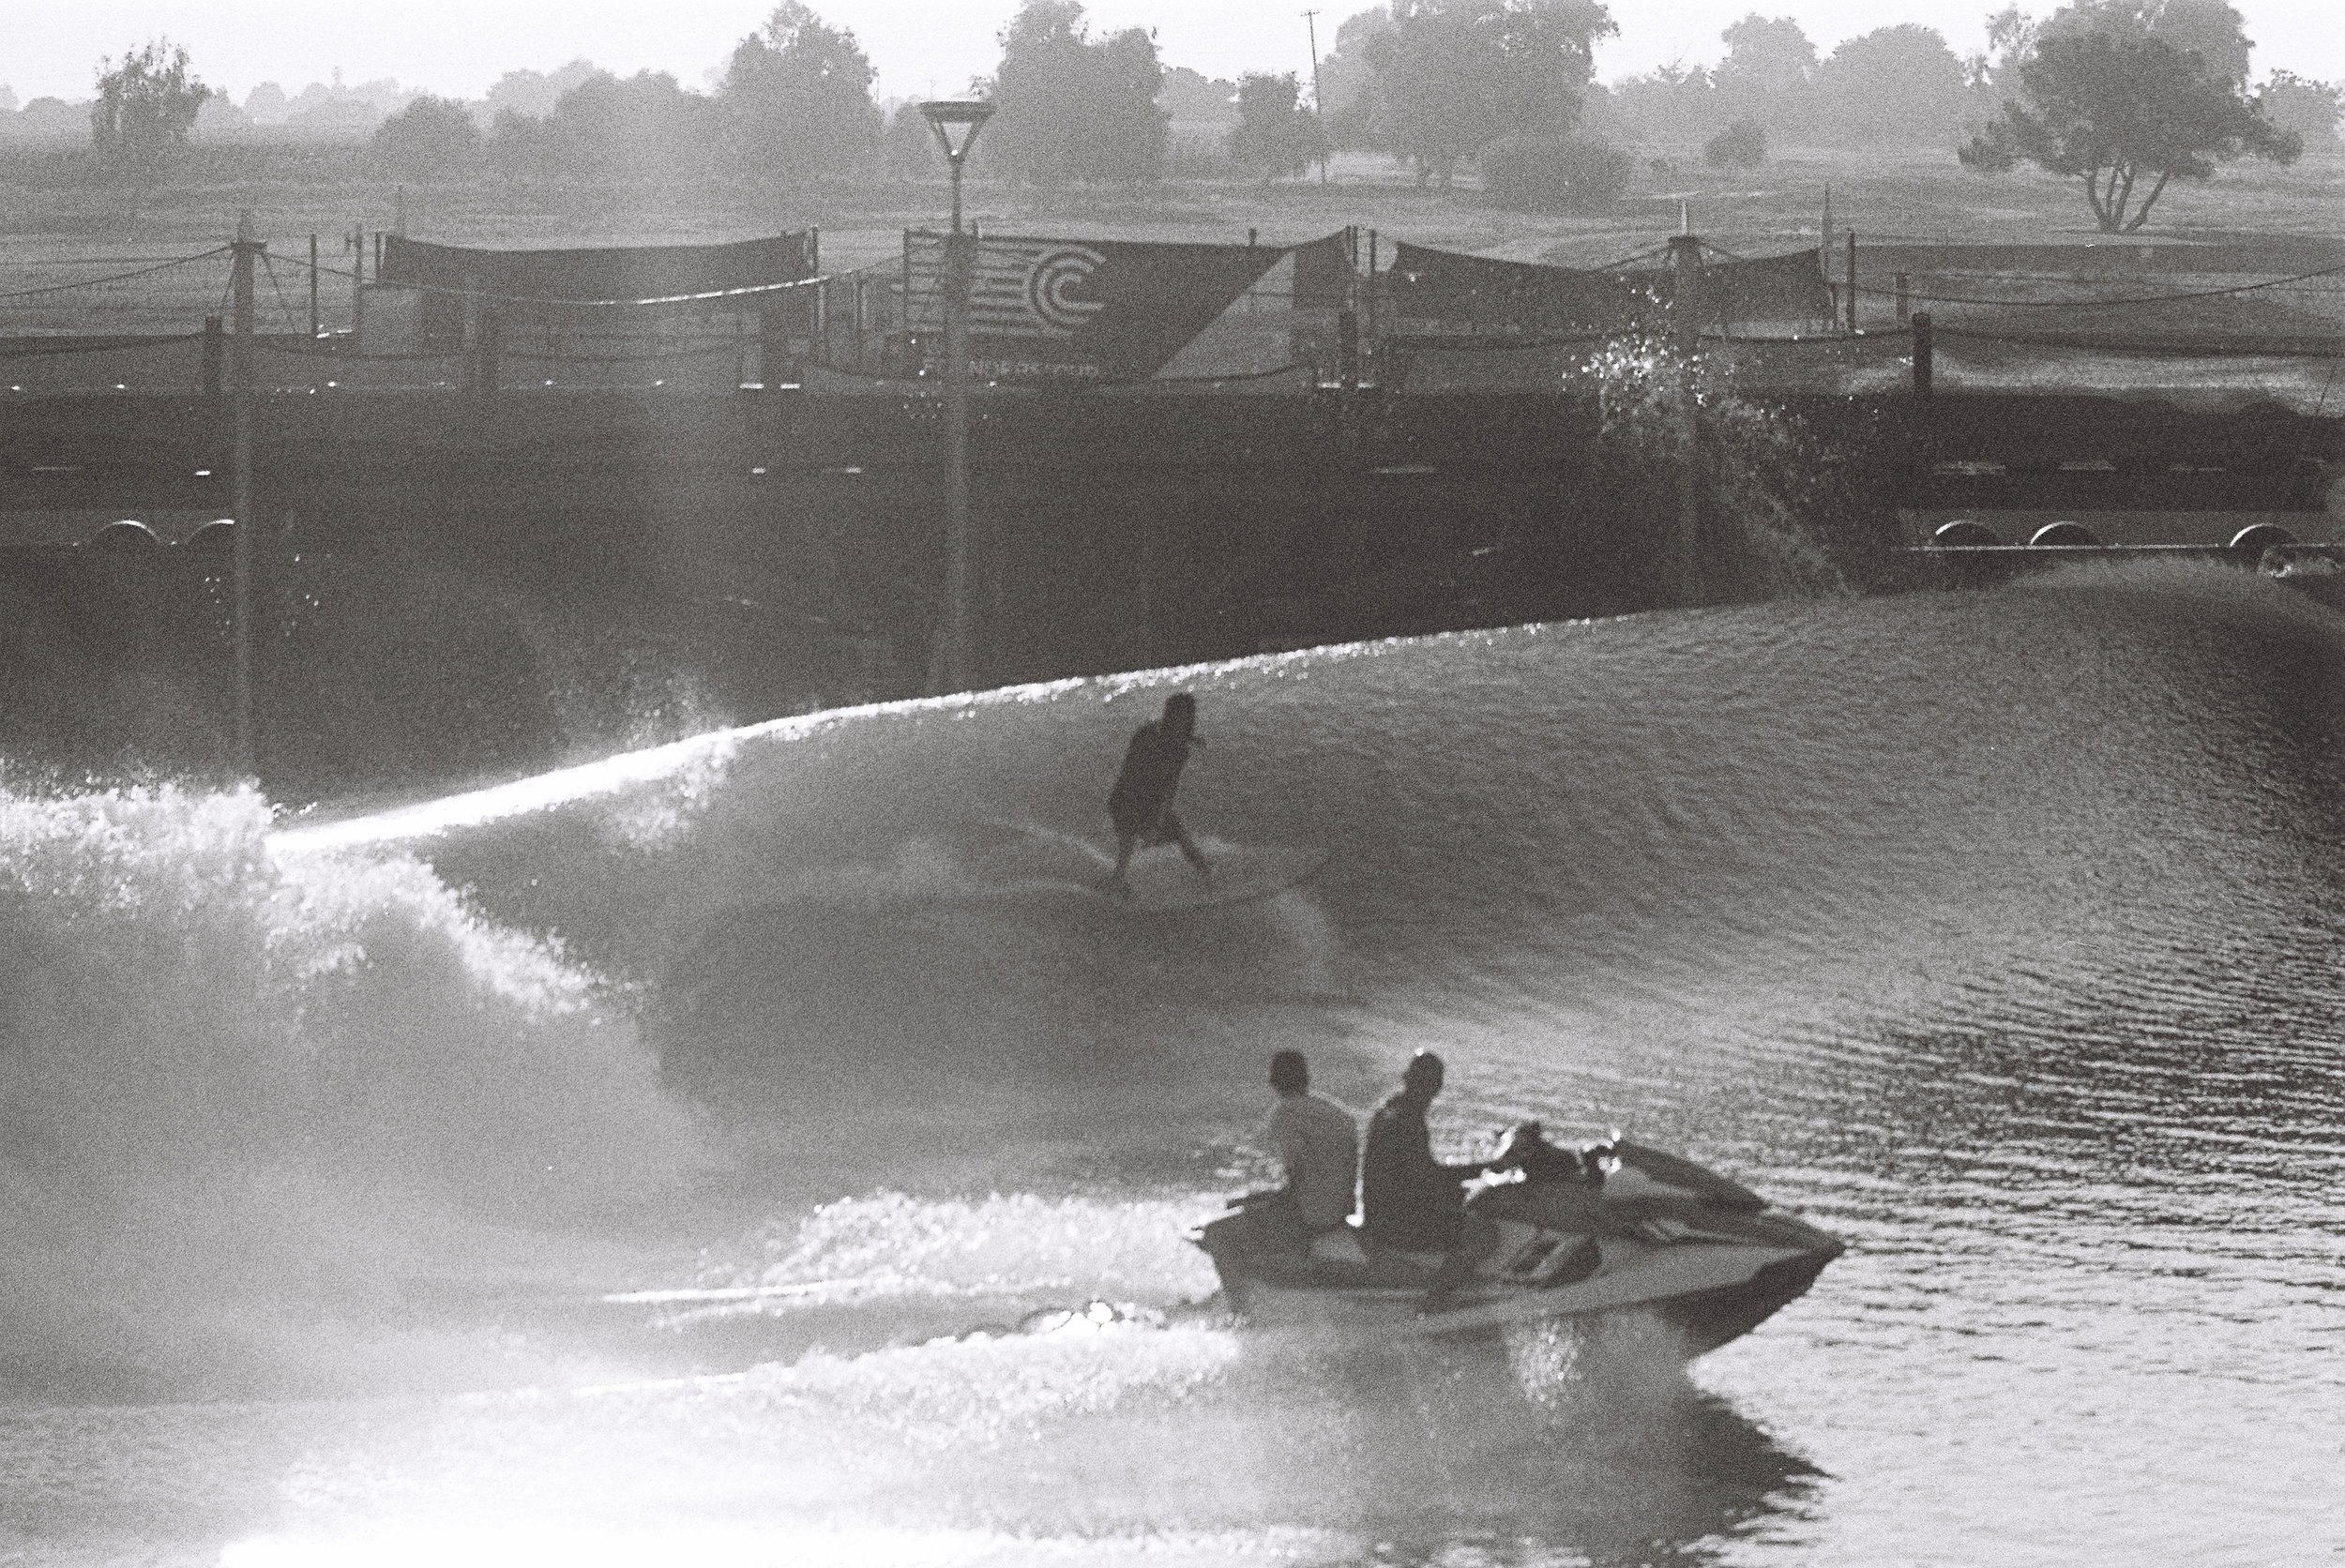 Kelly Slater's Surf Ranch - Kodak Tri-X film - shot on my Canon AE-1 with a 100-200mm lens .